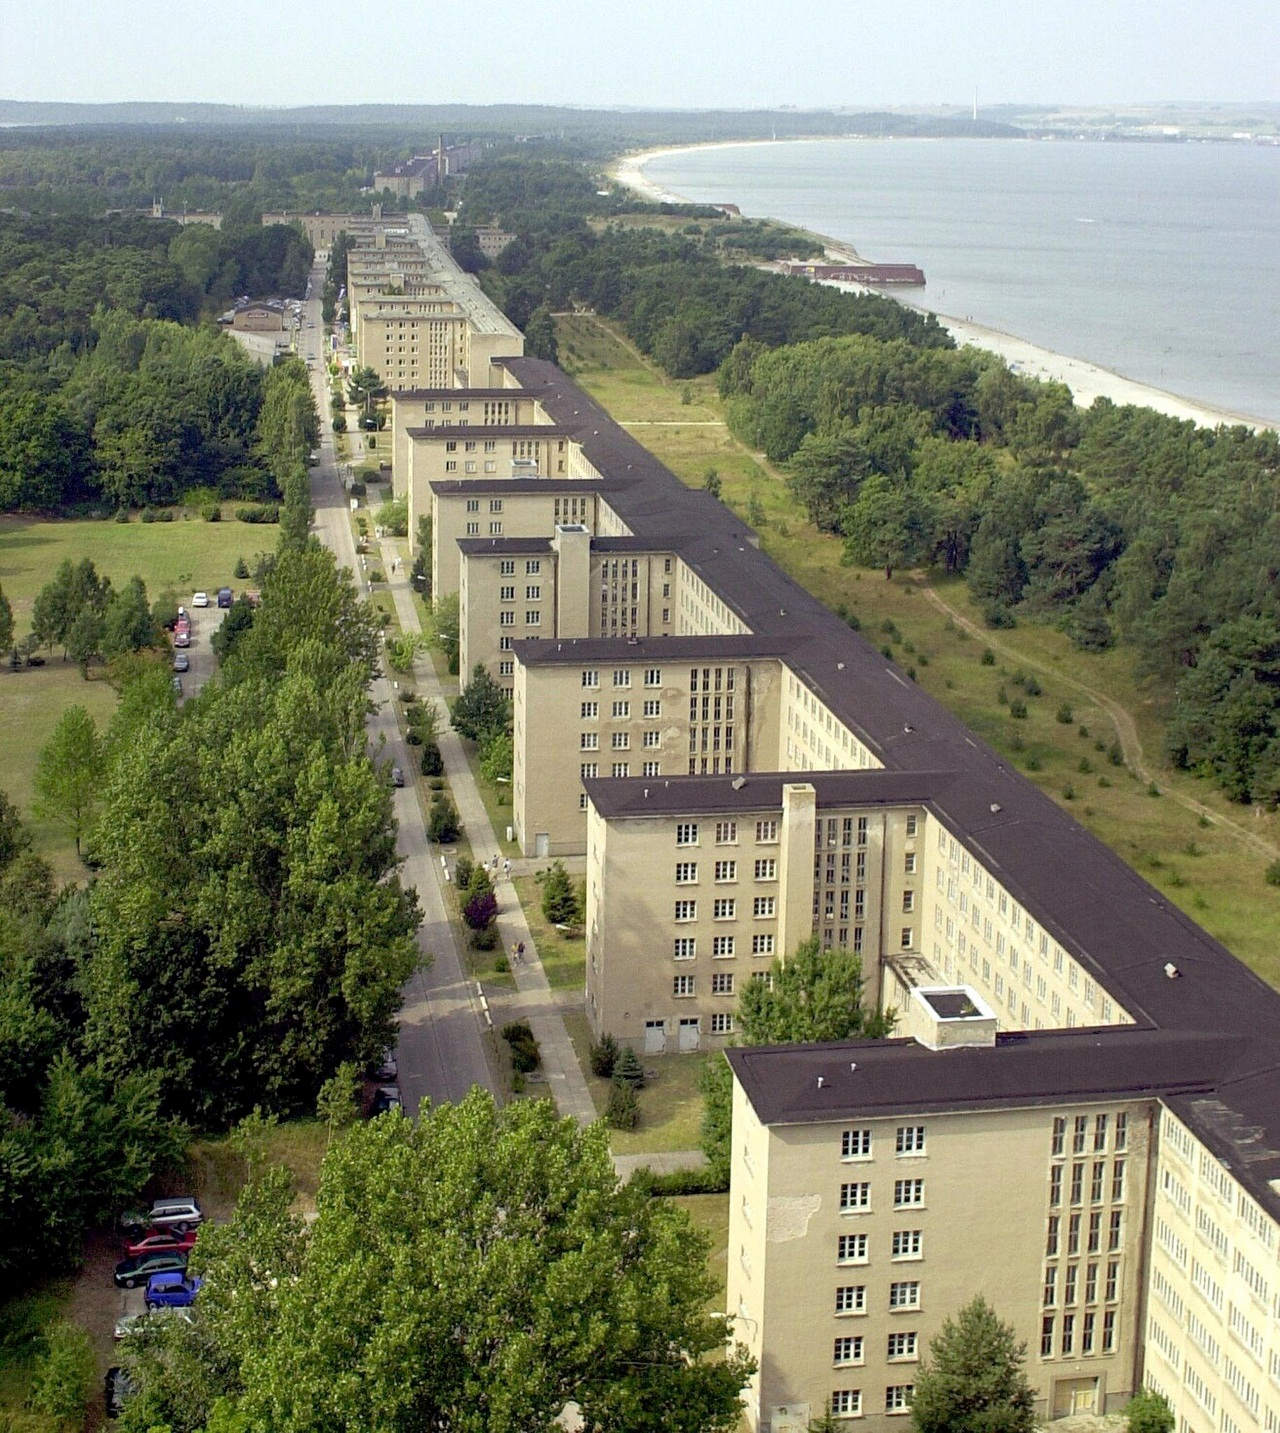 GERMANY-NAZI-ARCHITECTURE-AUCTION